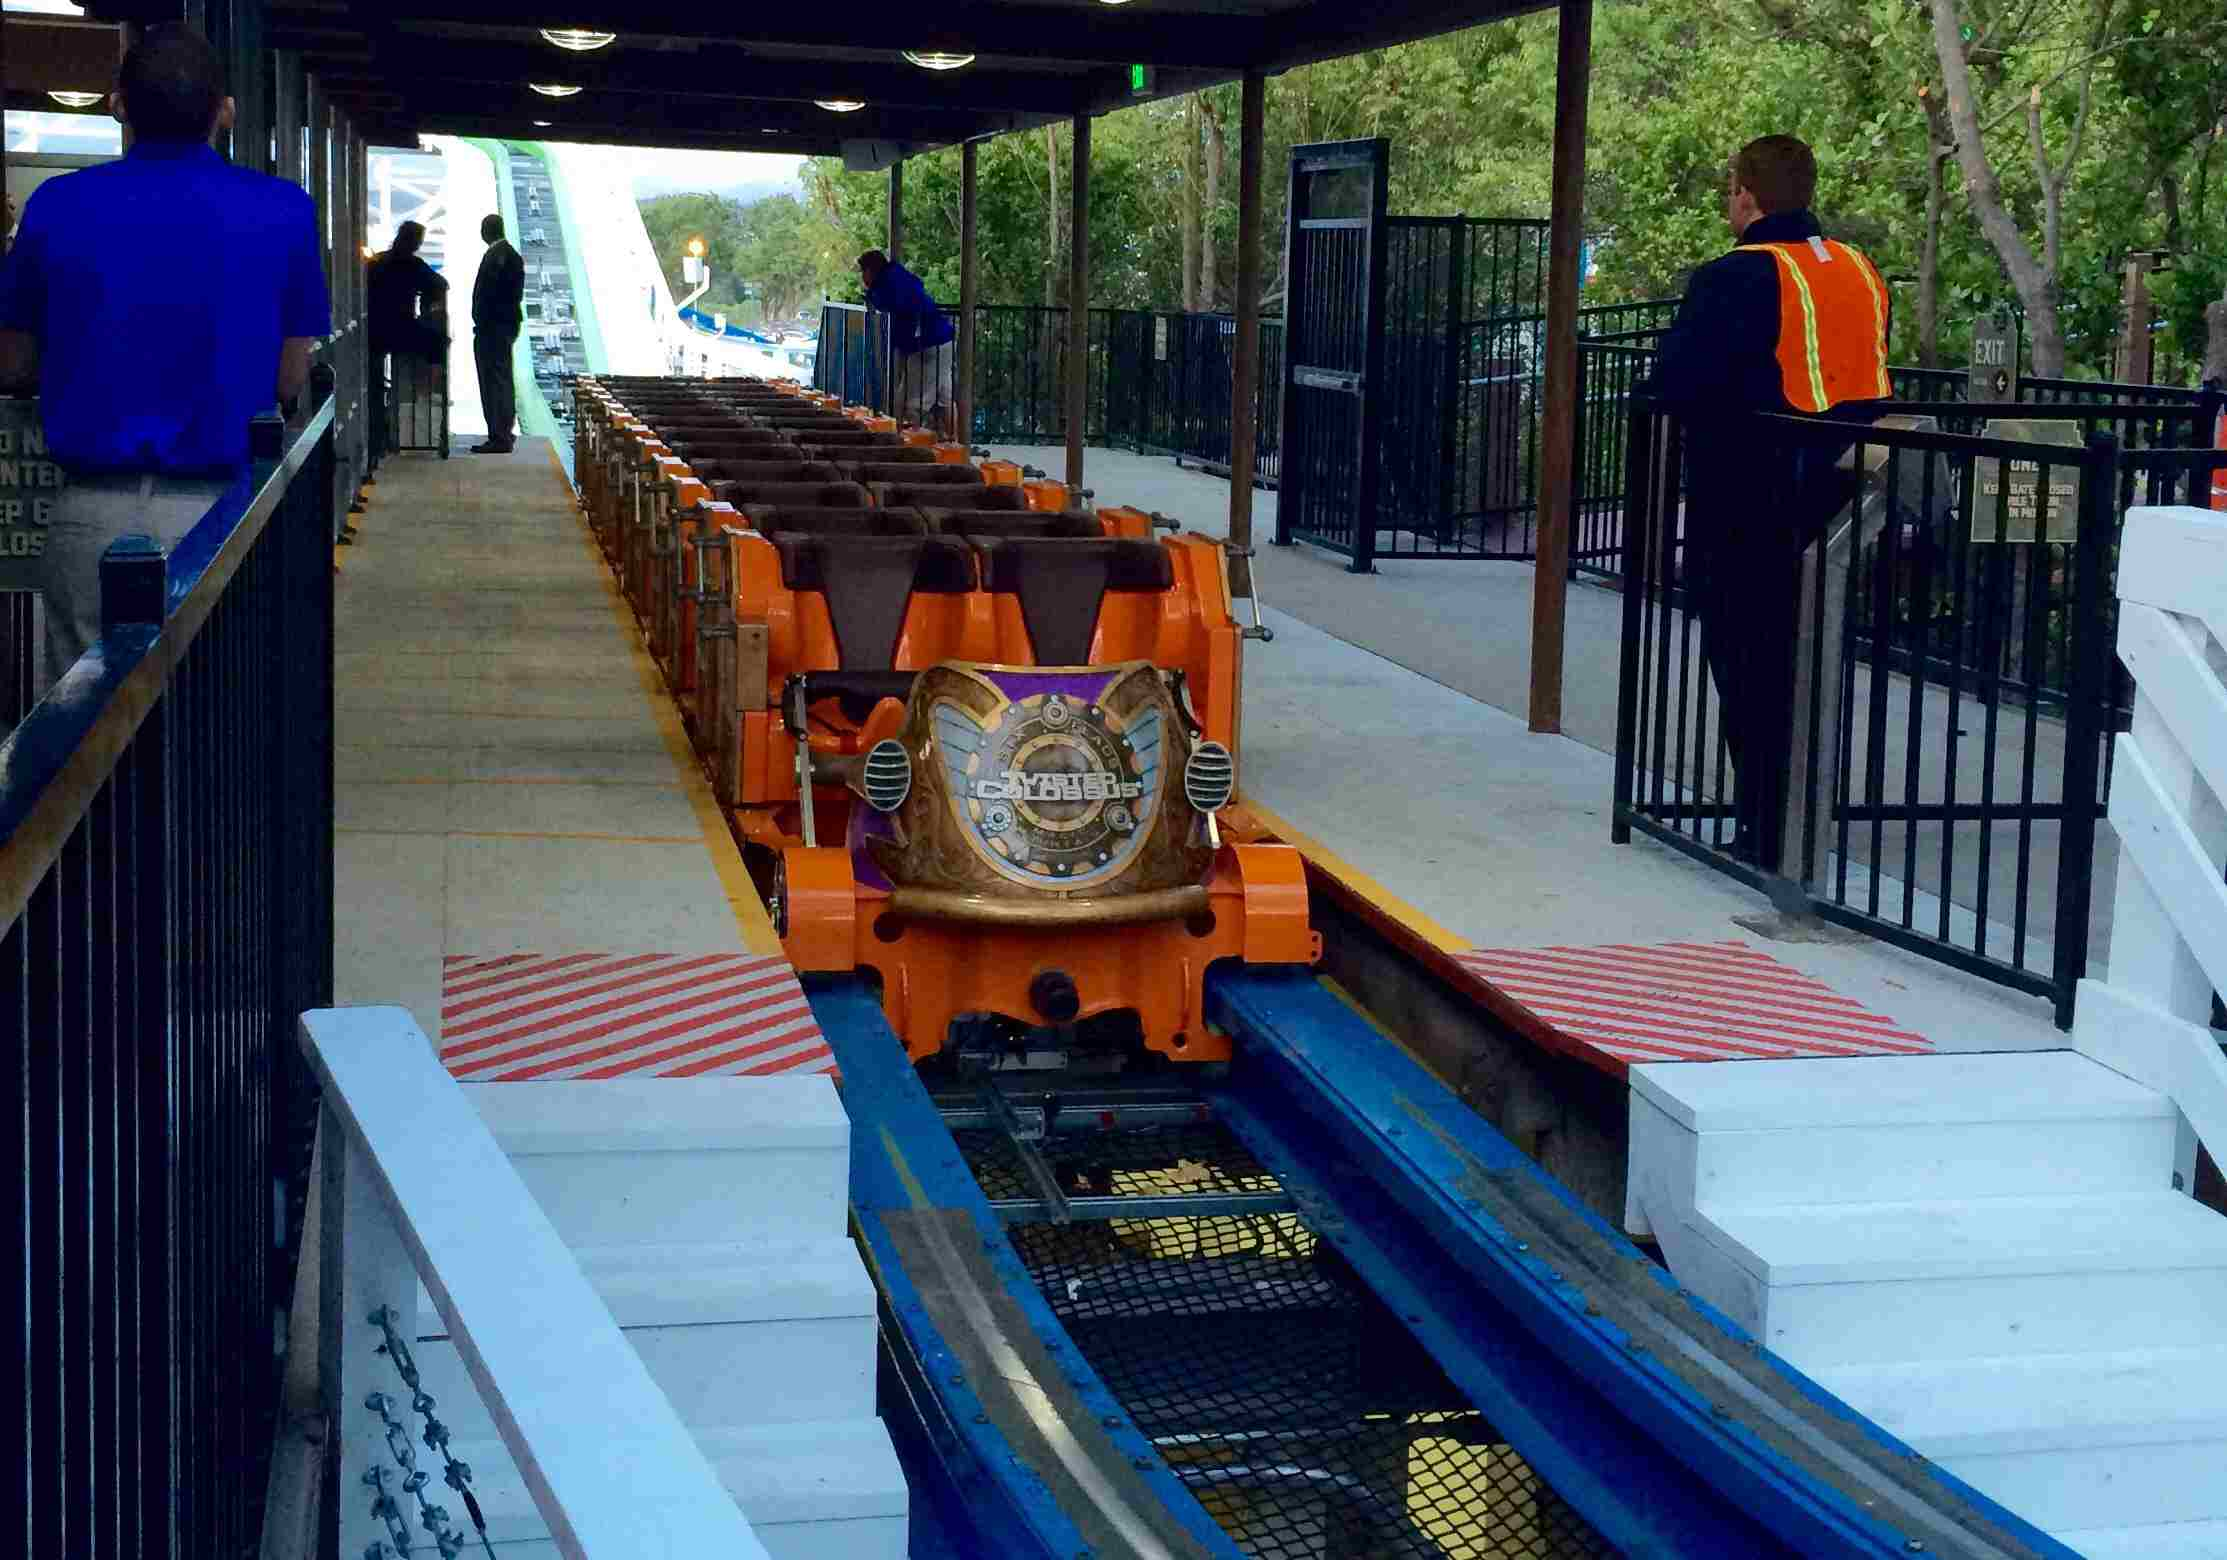 Twisted Colossus coaster car